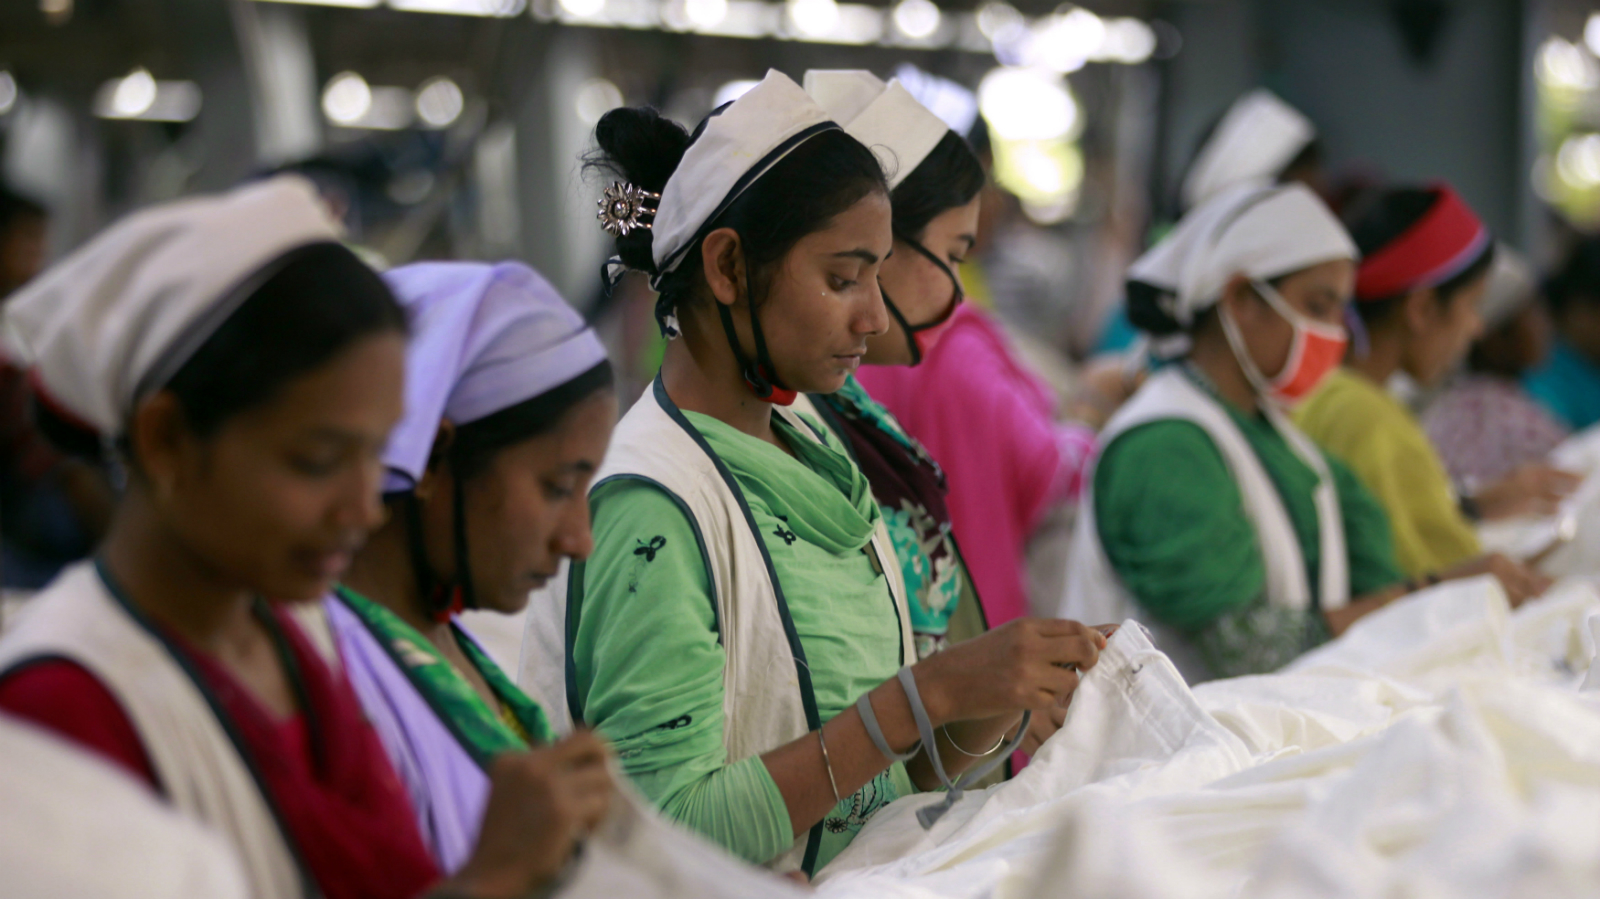 Women work at Goldtex Limited garment factory inside the Dhaka Export Processing Zone (DEPZ) in Savar April 11, 2013.